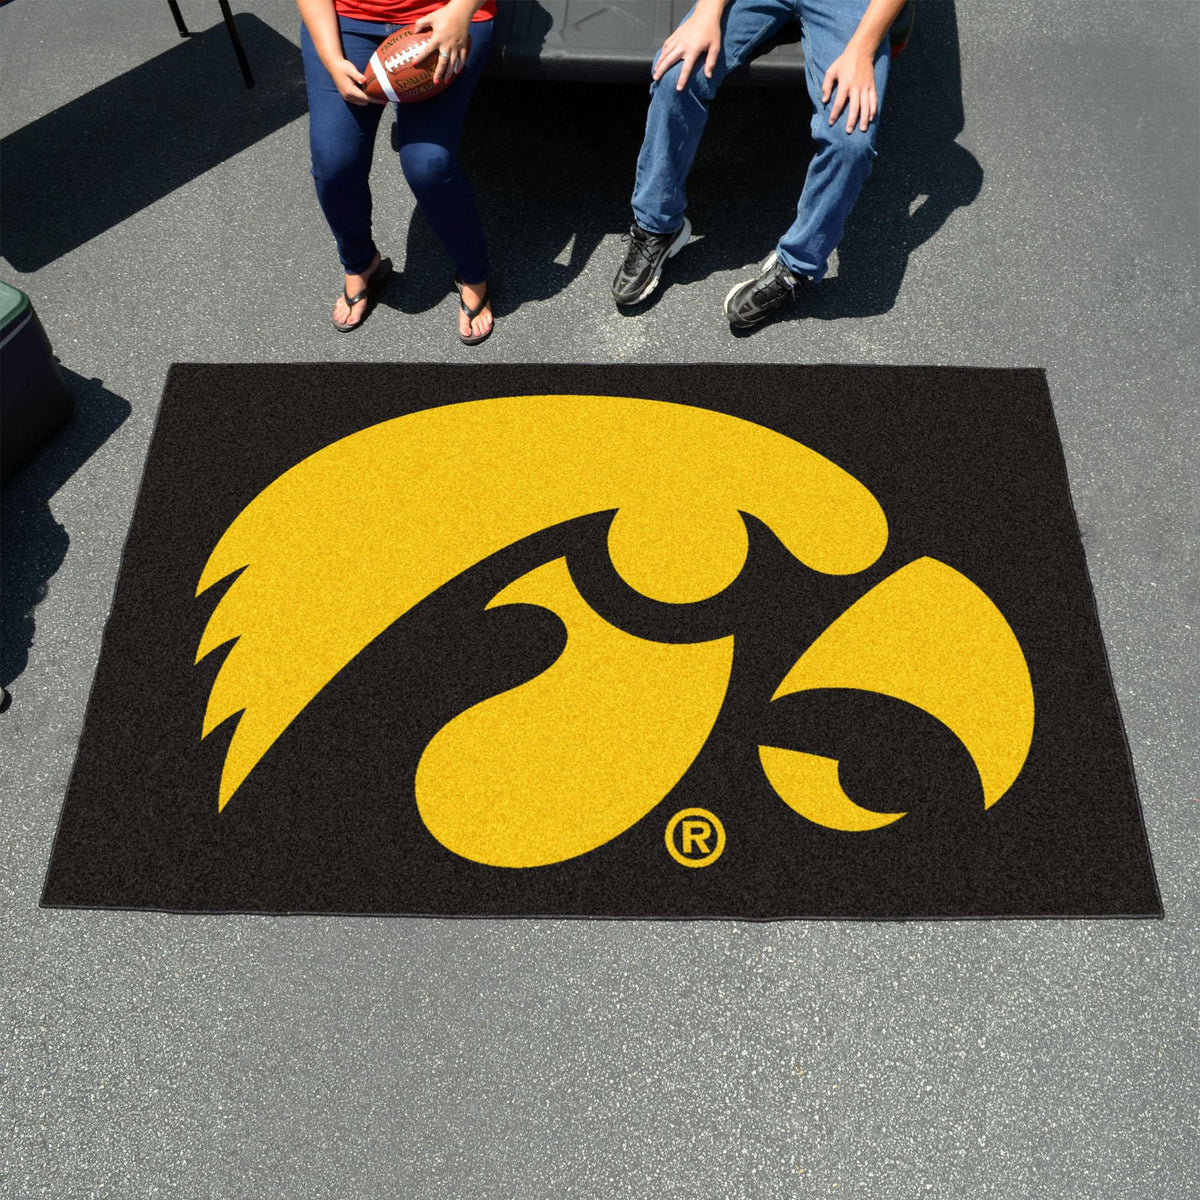 Collegiate - Ulti-Mat: A - L Collegiate Mats, Rectangular Mats, Ulti-Mat, Collegiate, Home Fan Mats Iowa